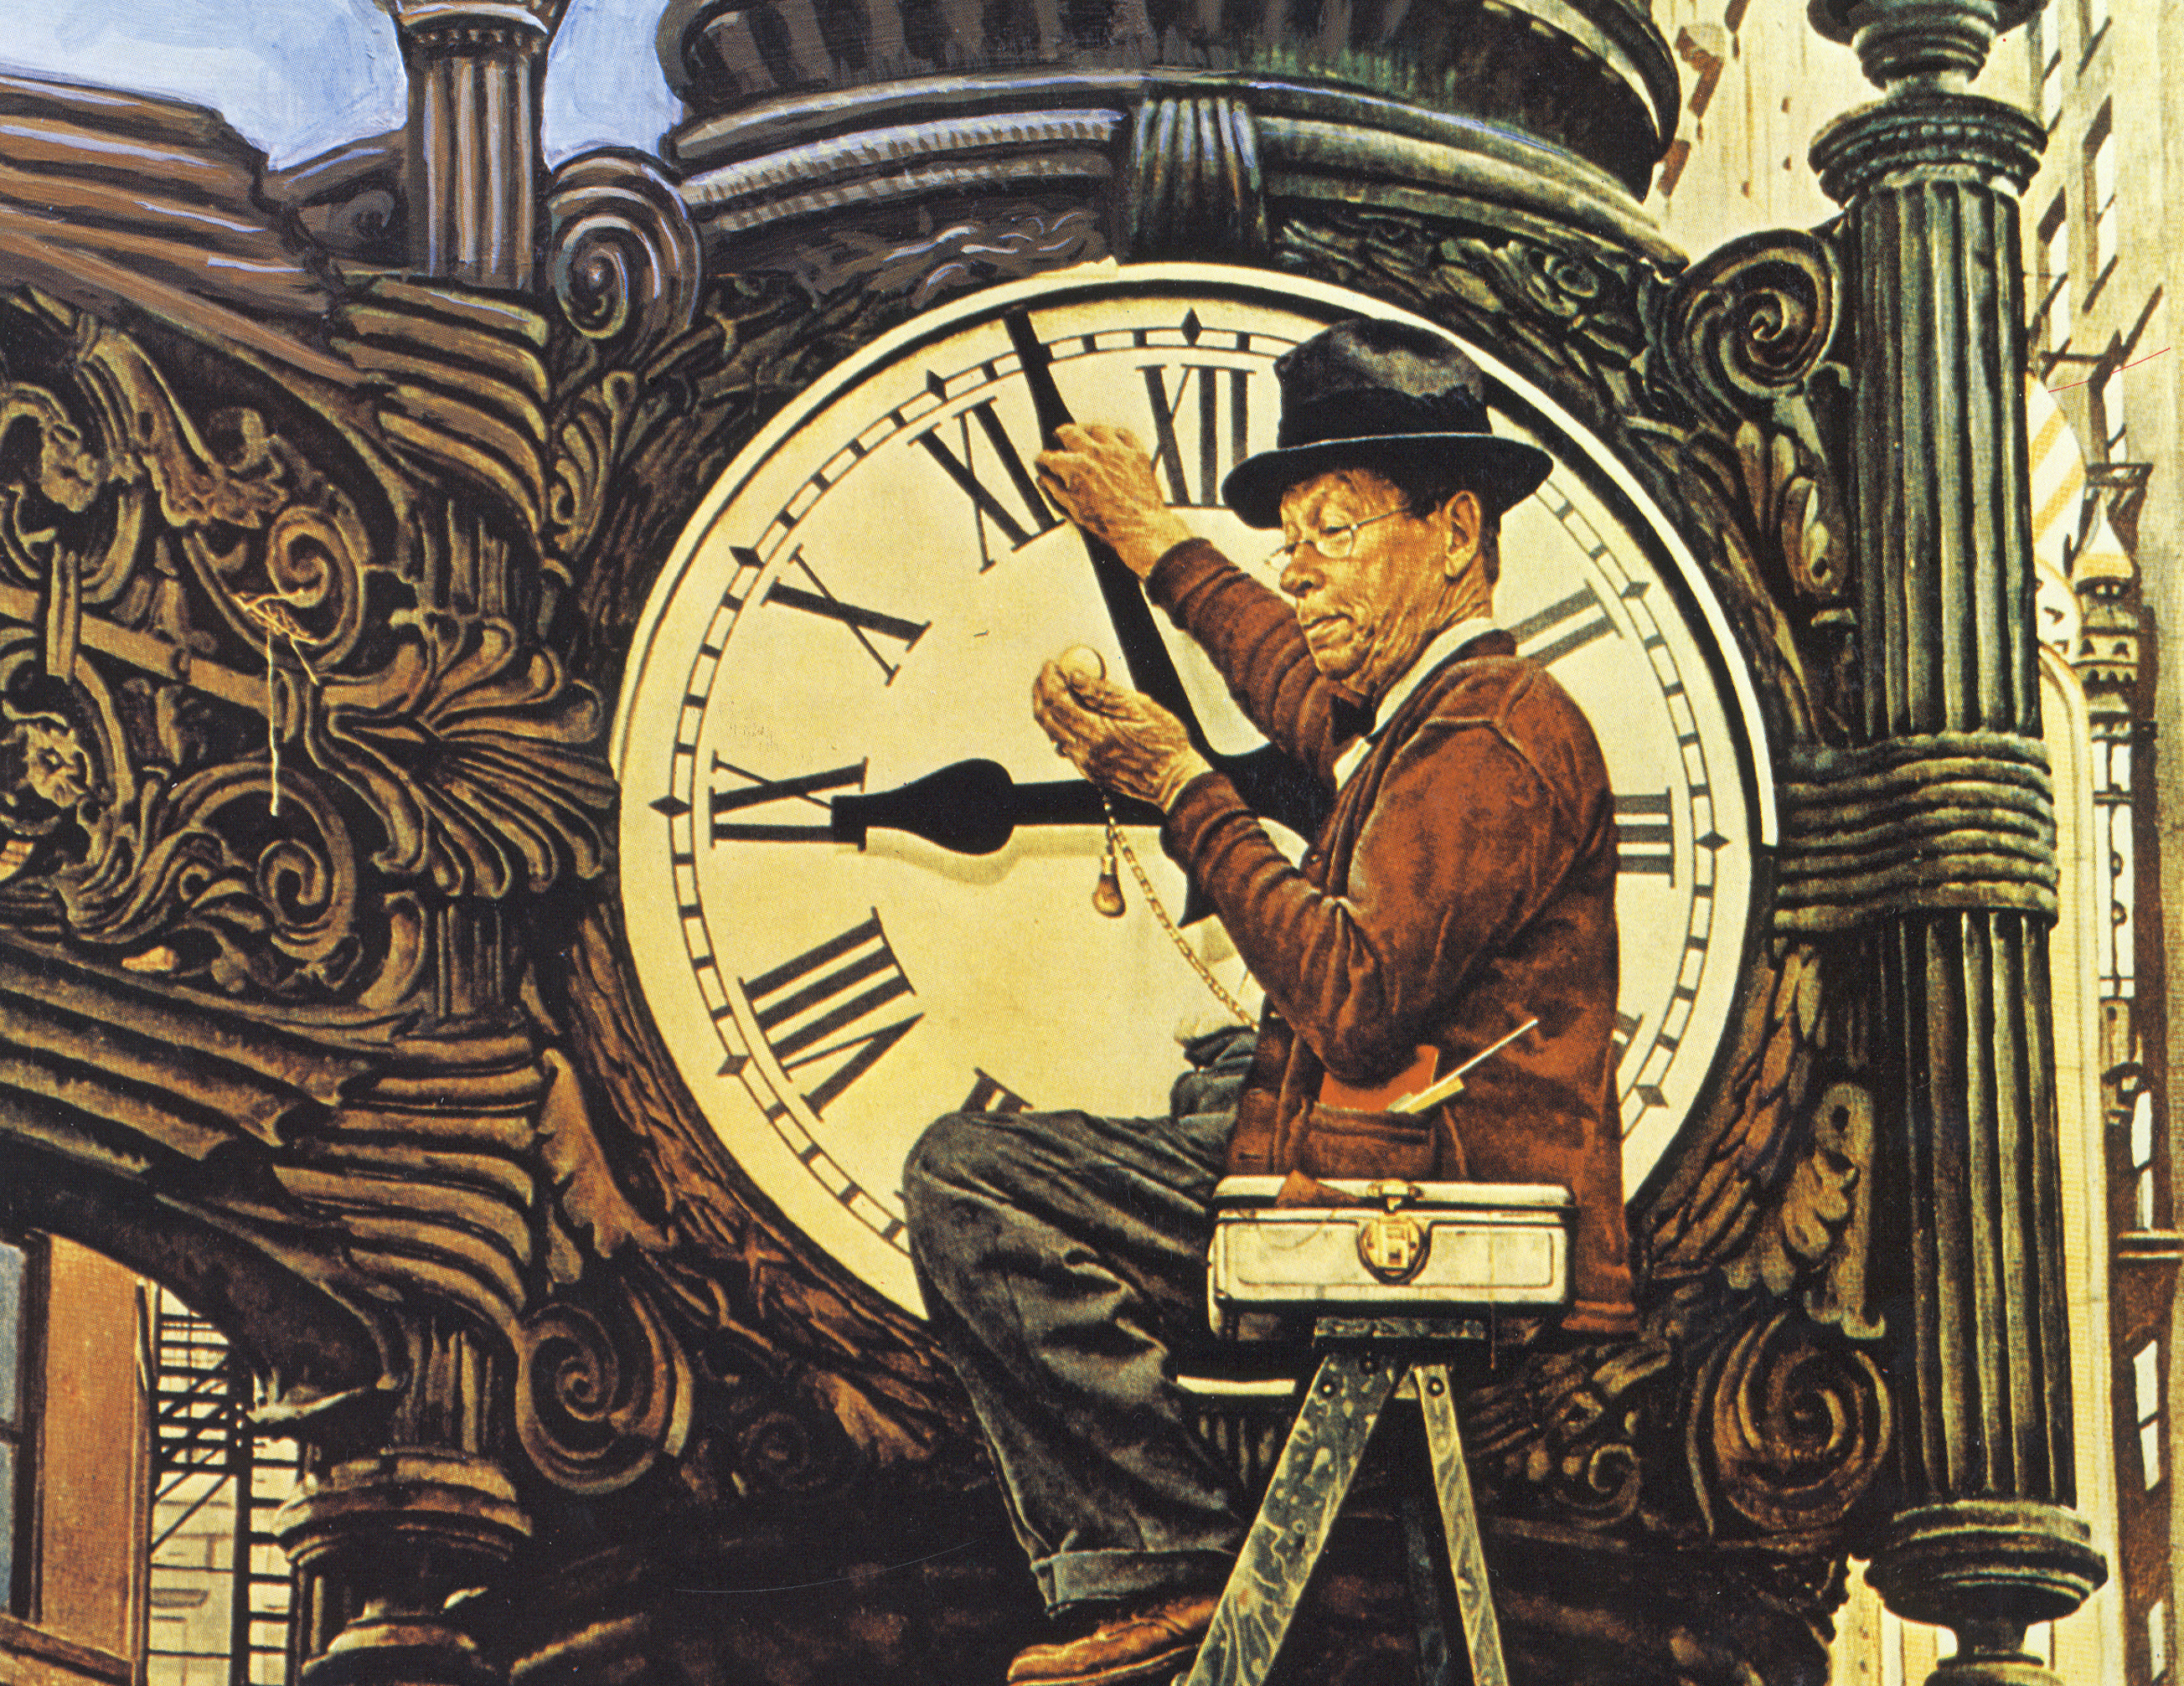 Man Setting Clock - Norman Rockwell Museum Annual Reports